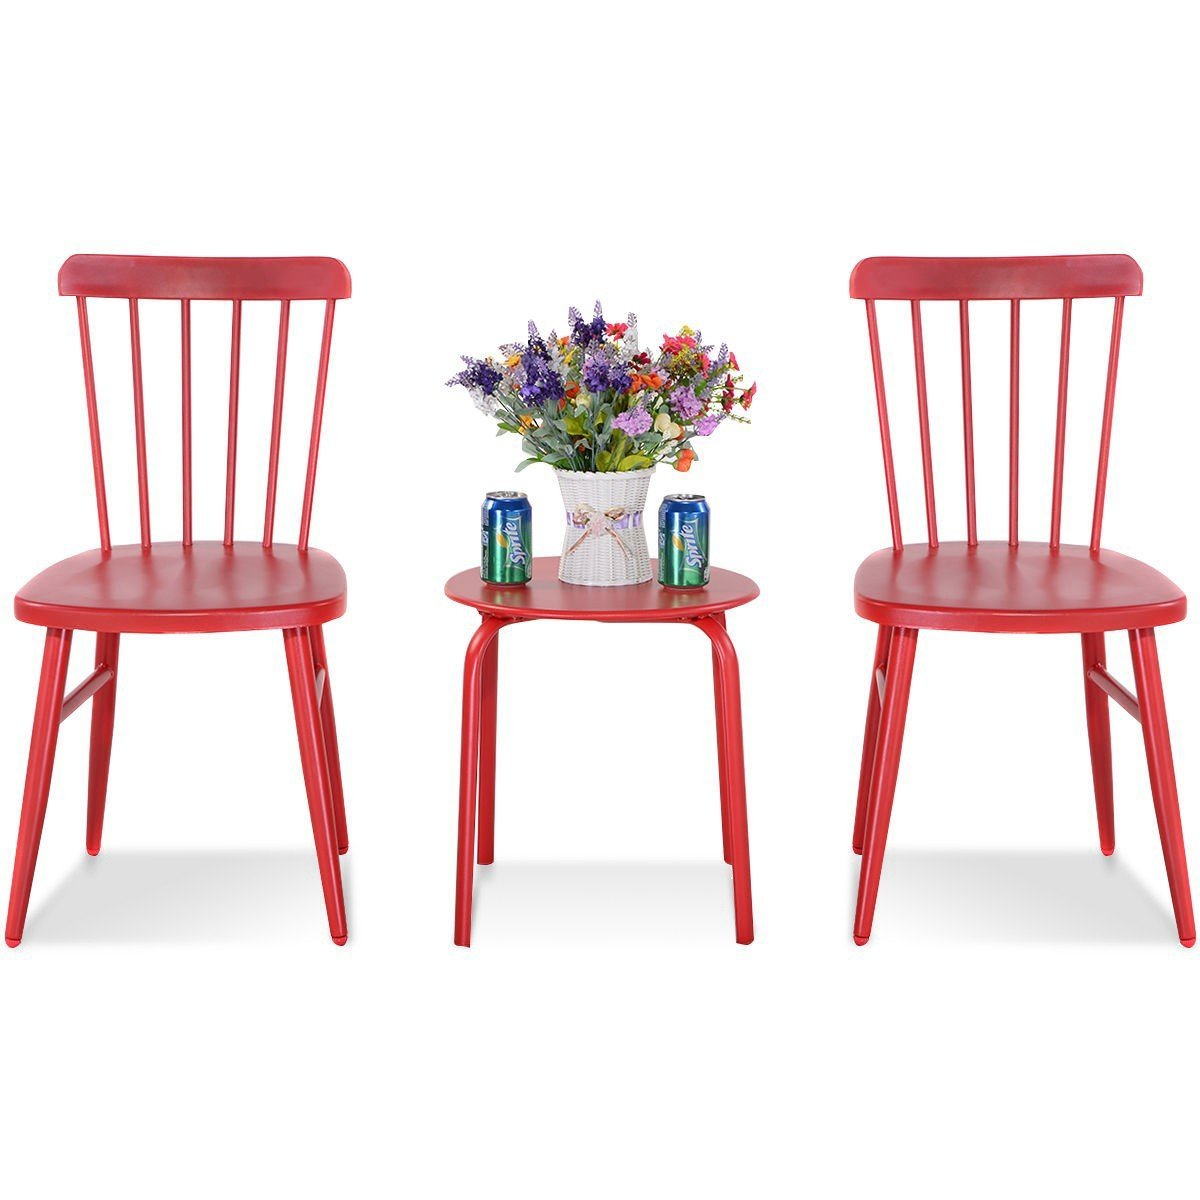 MD Group Bistro Table Chair Sets Outdoor Patio Red Steel Heavy Duty Frame Kitchen Bar Stool